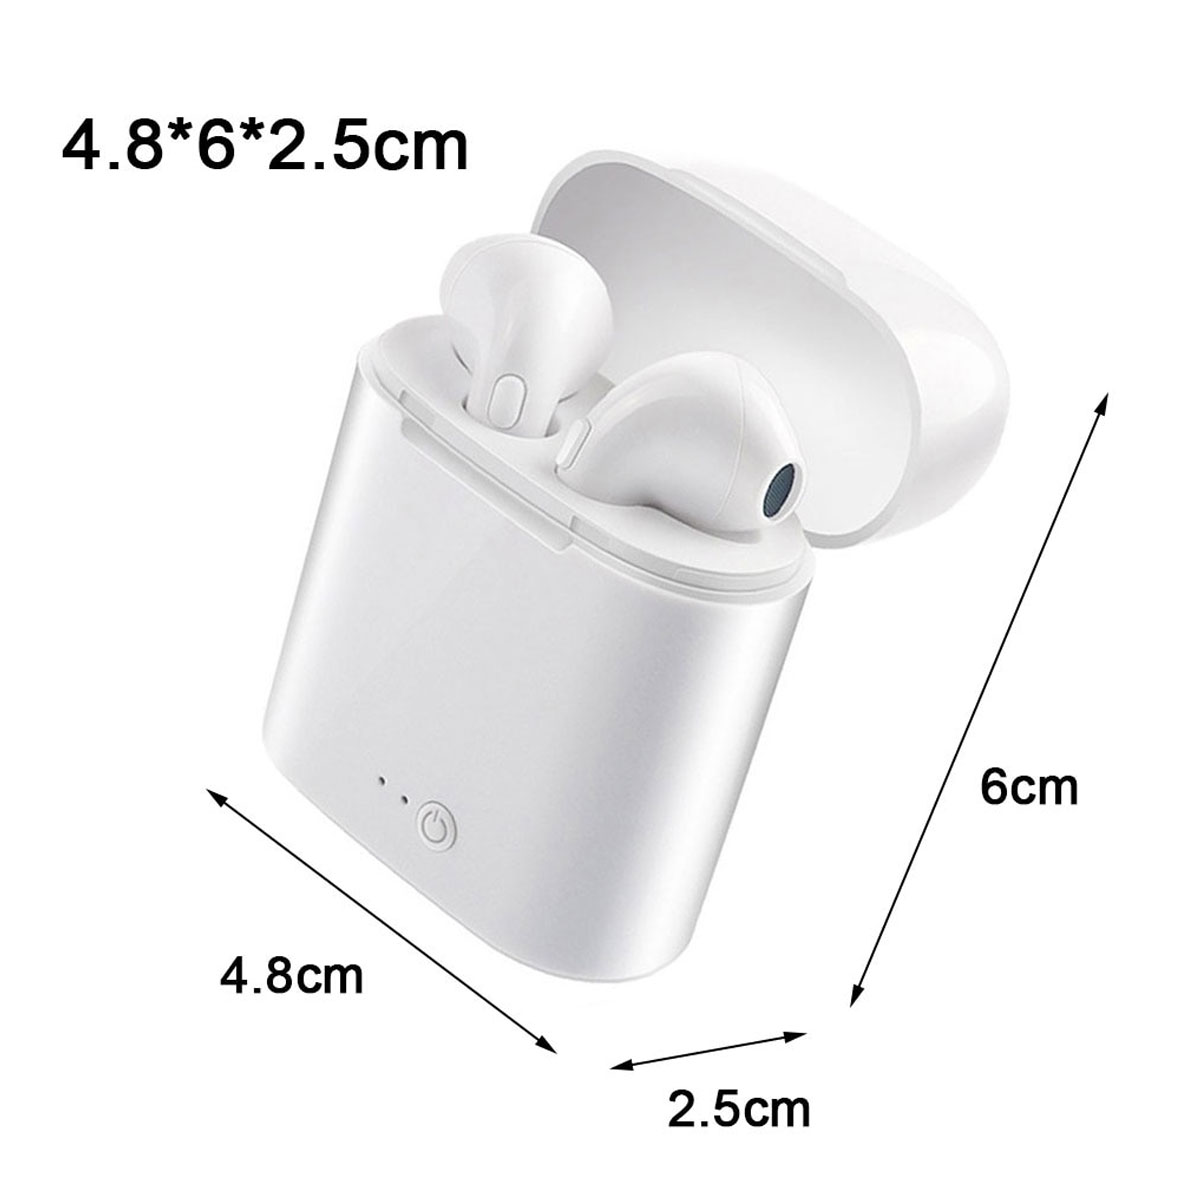 i7 Mini Wireless Bluetooth Earphone Stereo Binaural Earbuds with Mic - White	30 Gallery Image 3